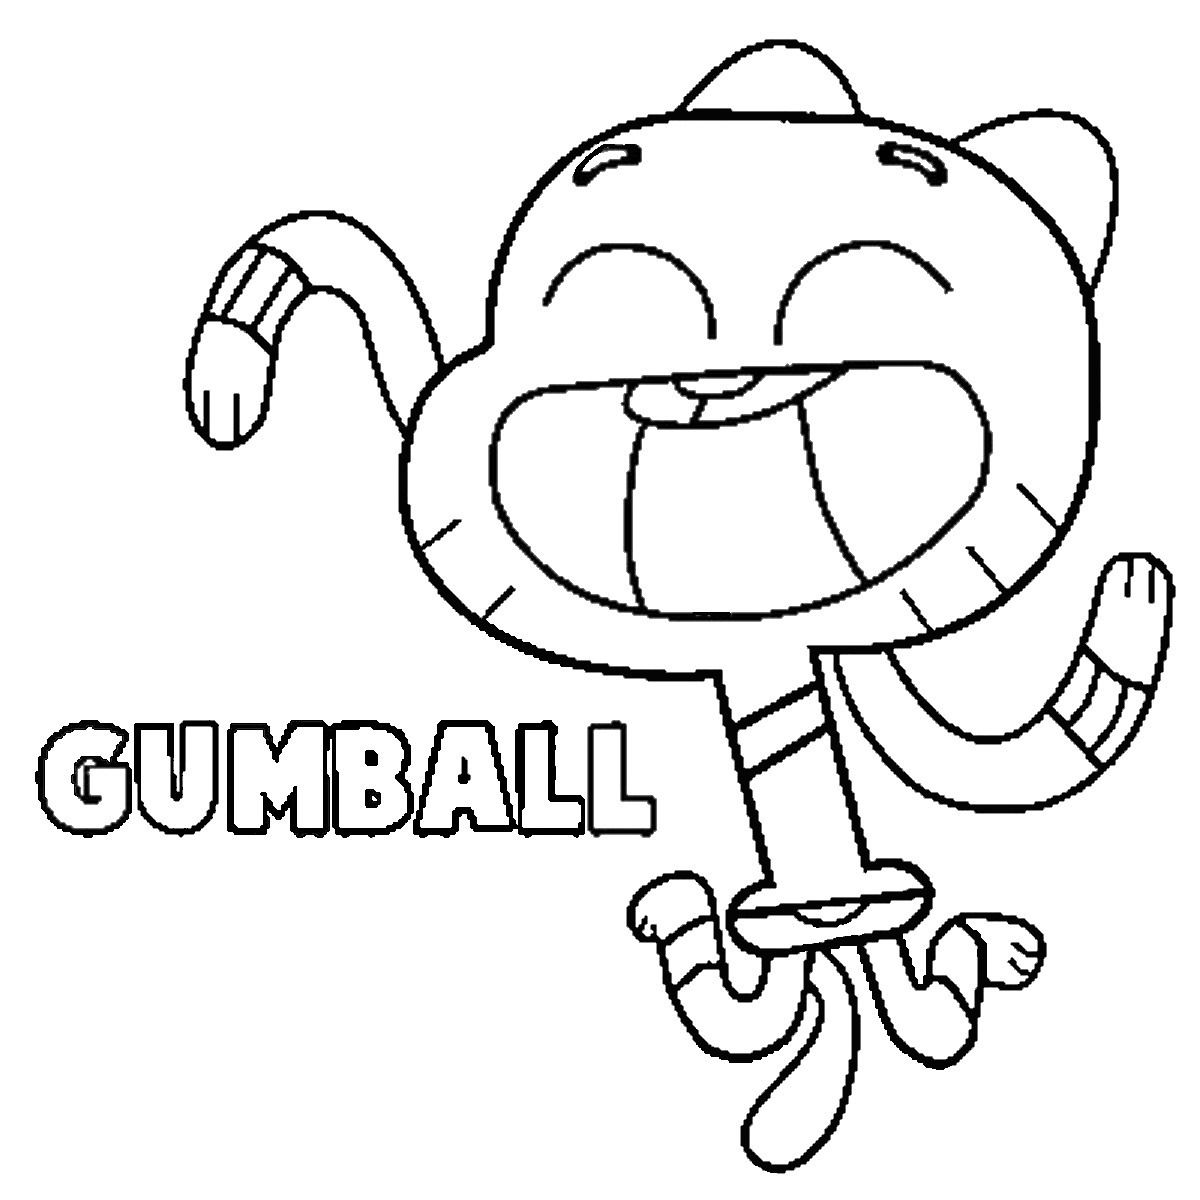 Print Now Easy Cartoon Drawings Gumball The Amazing World Of Gumball